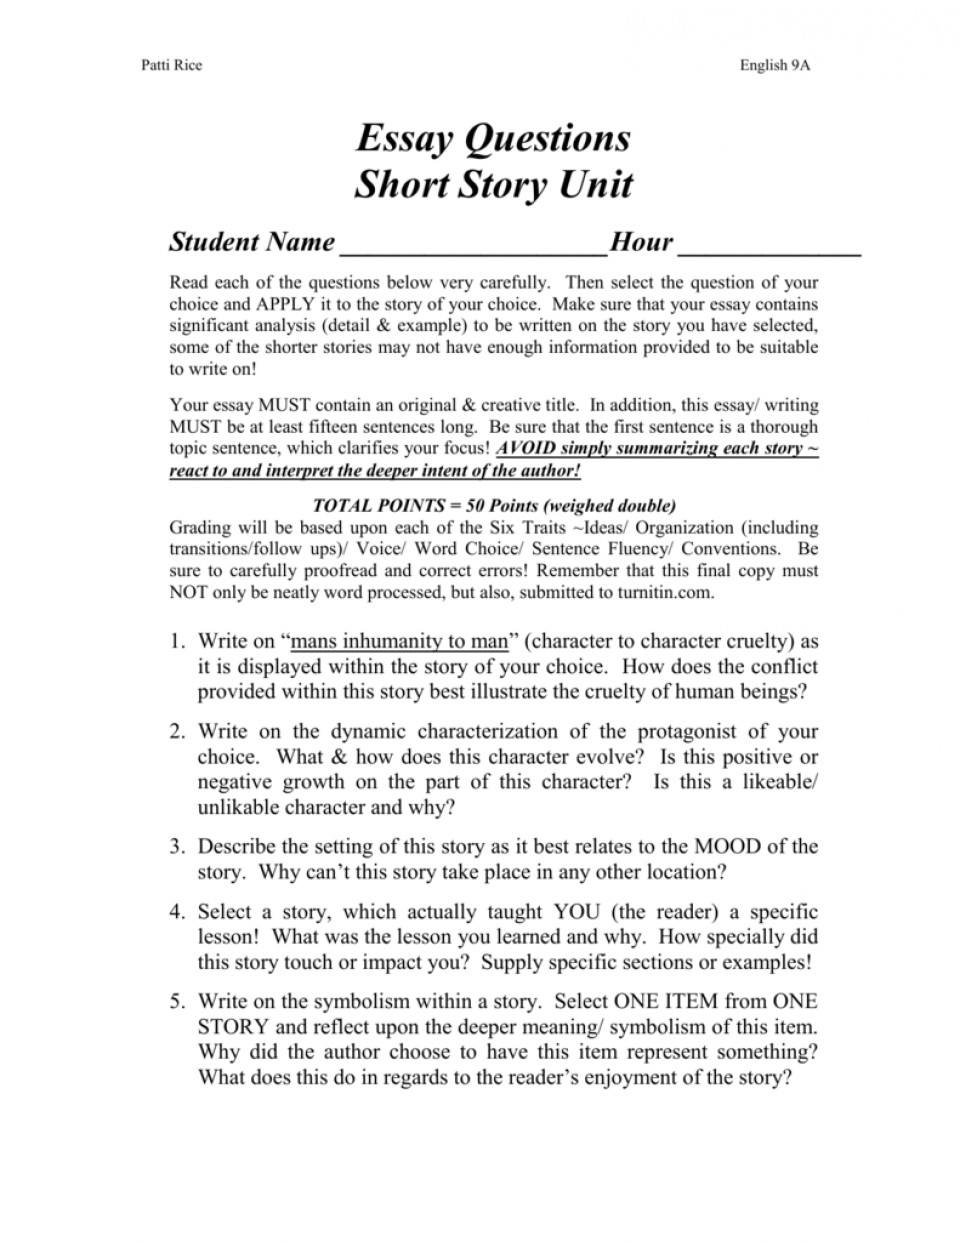 006 Short Story Essay Examples Example 008001643 1 Unforgettable Analysis Comparison 960